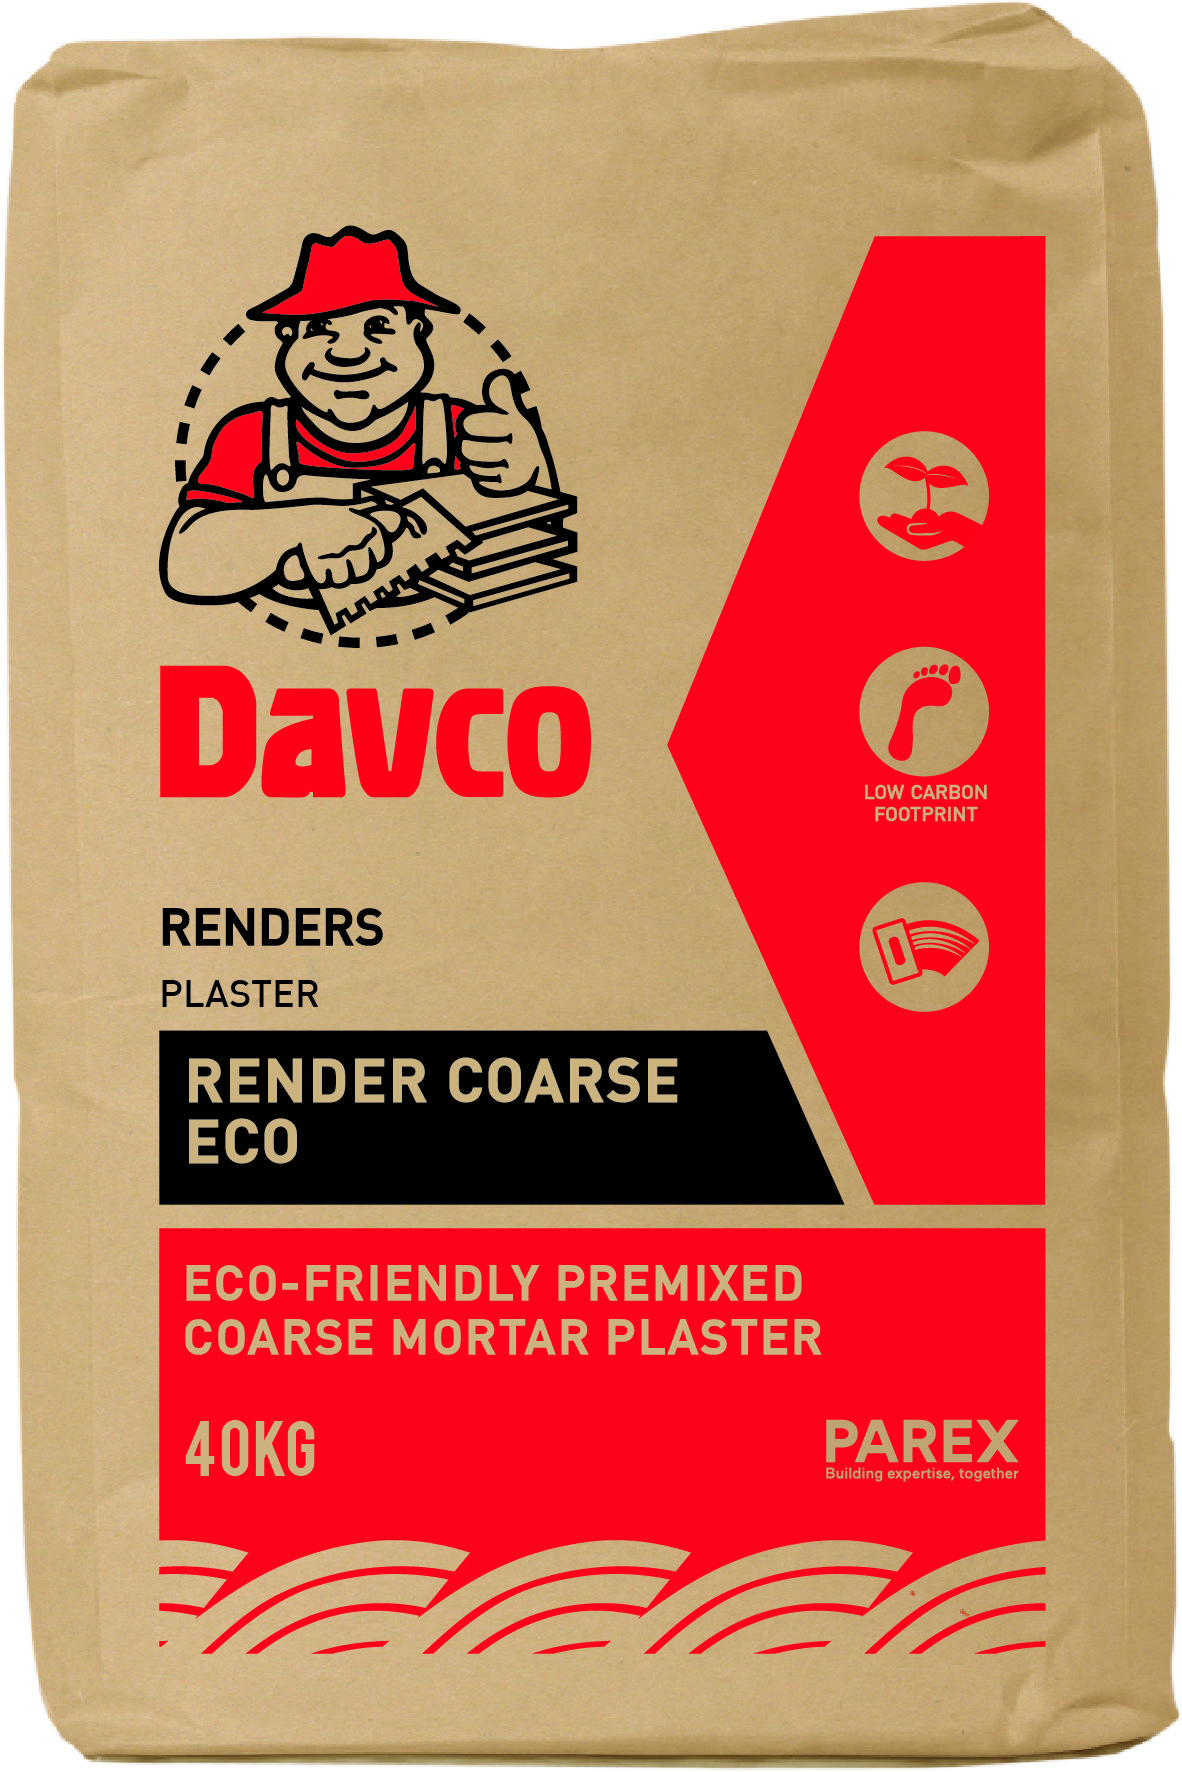 Davco Render Coarse ECO